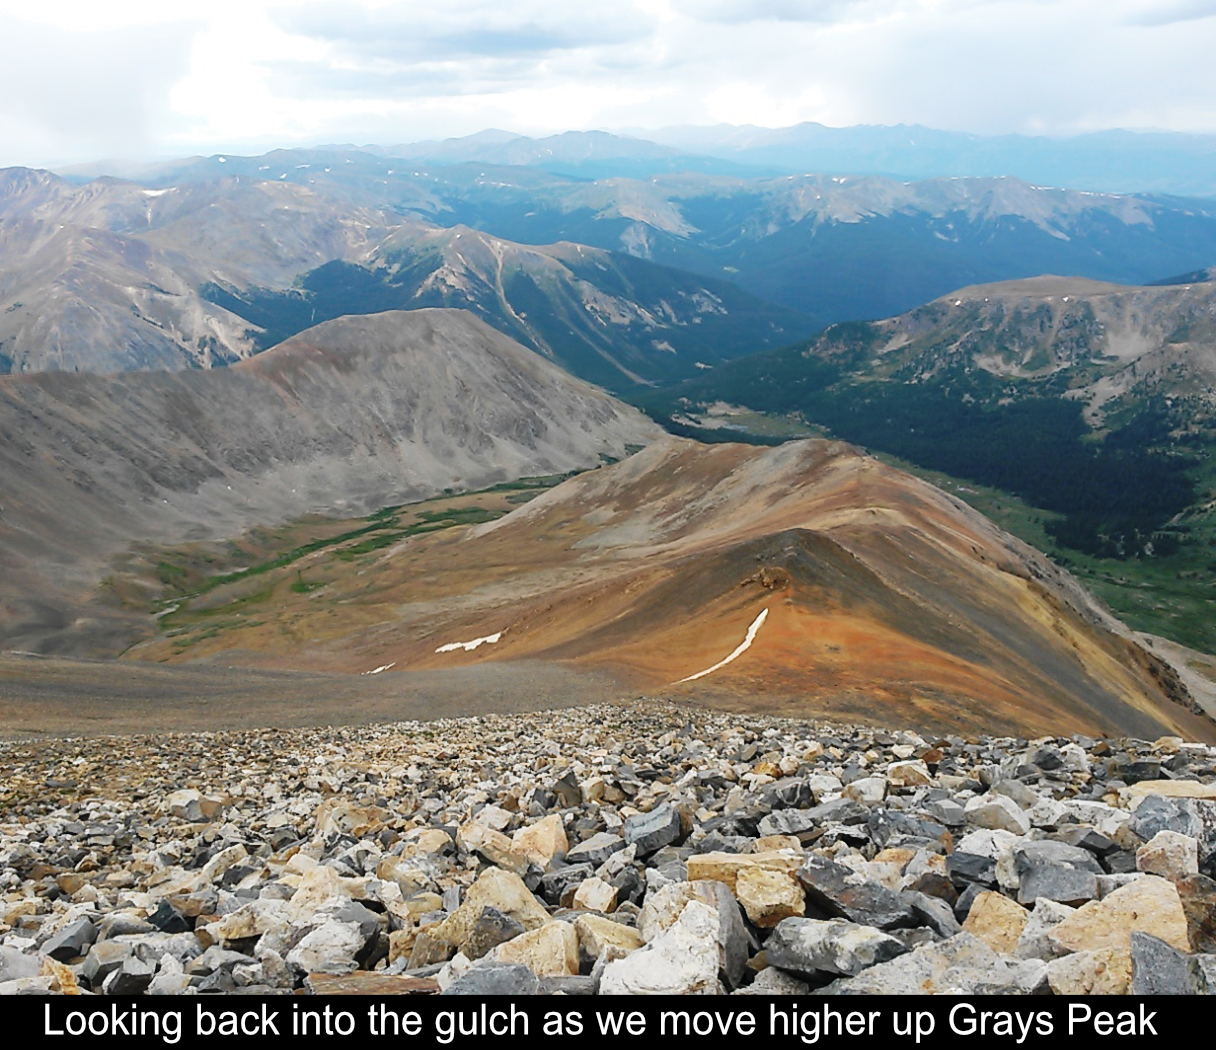 Moving Higher Up Grays Peak